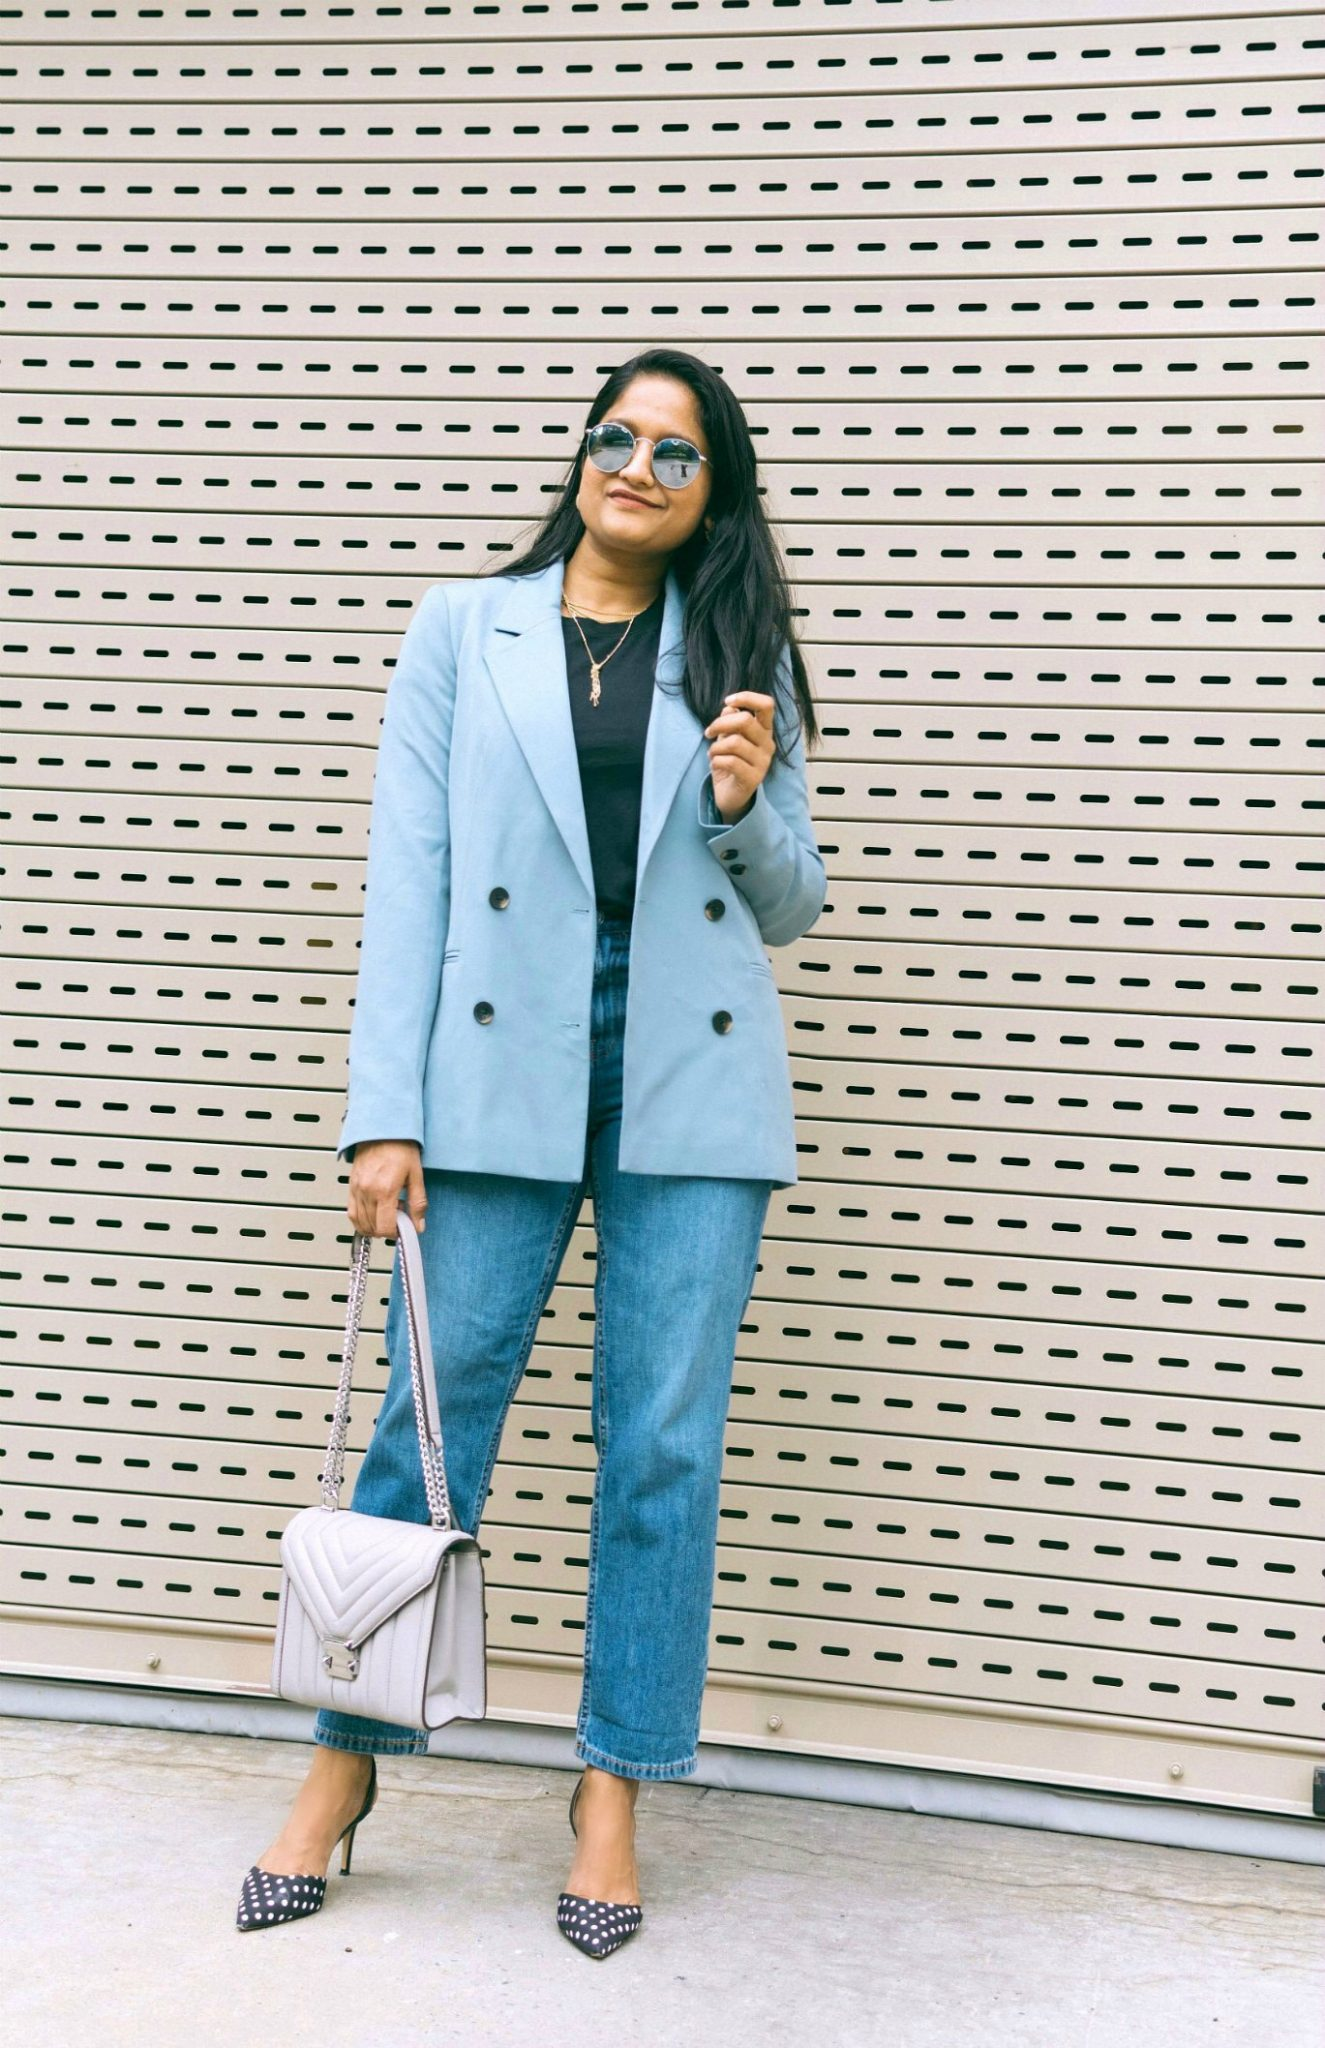 wearing Everlane summer jeans, The Cotton Box-Cut Tee, MICHAEL Michael Kors Whitney Quilted Leather Shoulder Bag, Kerry Polka Dot pumps, baby blue blazer